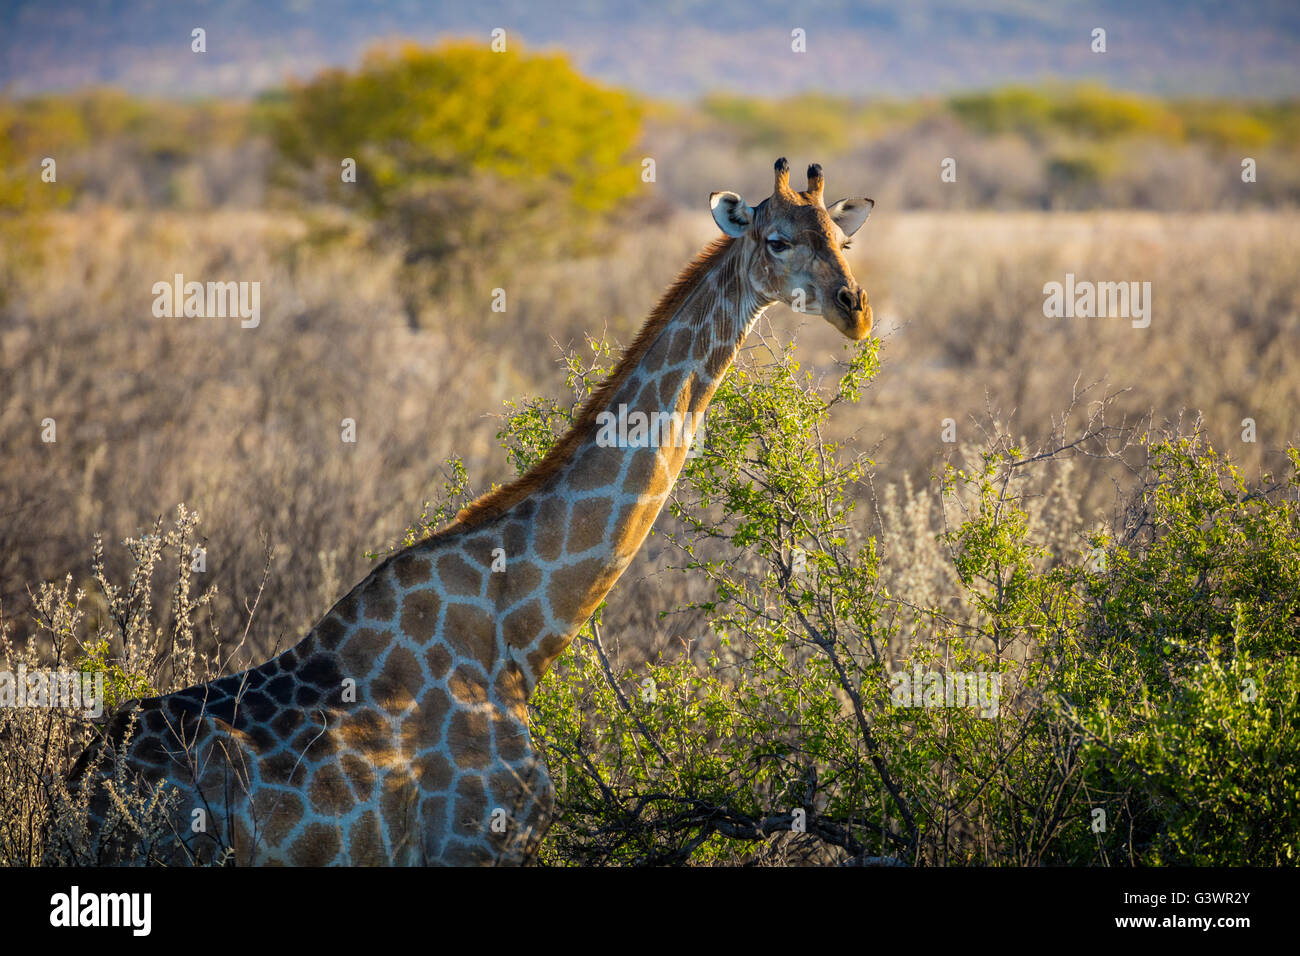 The giraffe (Giraffa camelopardalis) is an African even-toed ungulate mammal. - Stock Image